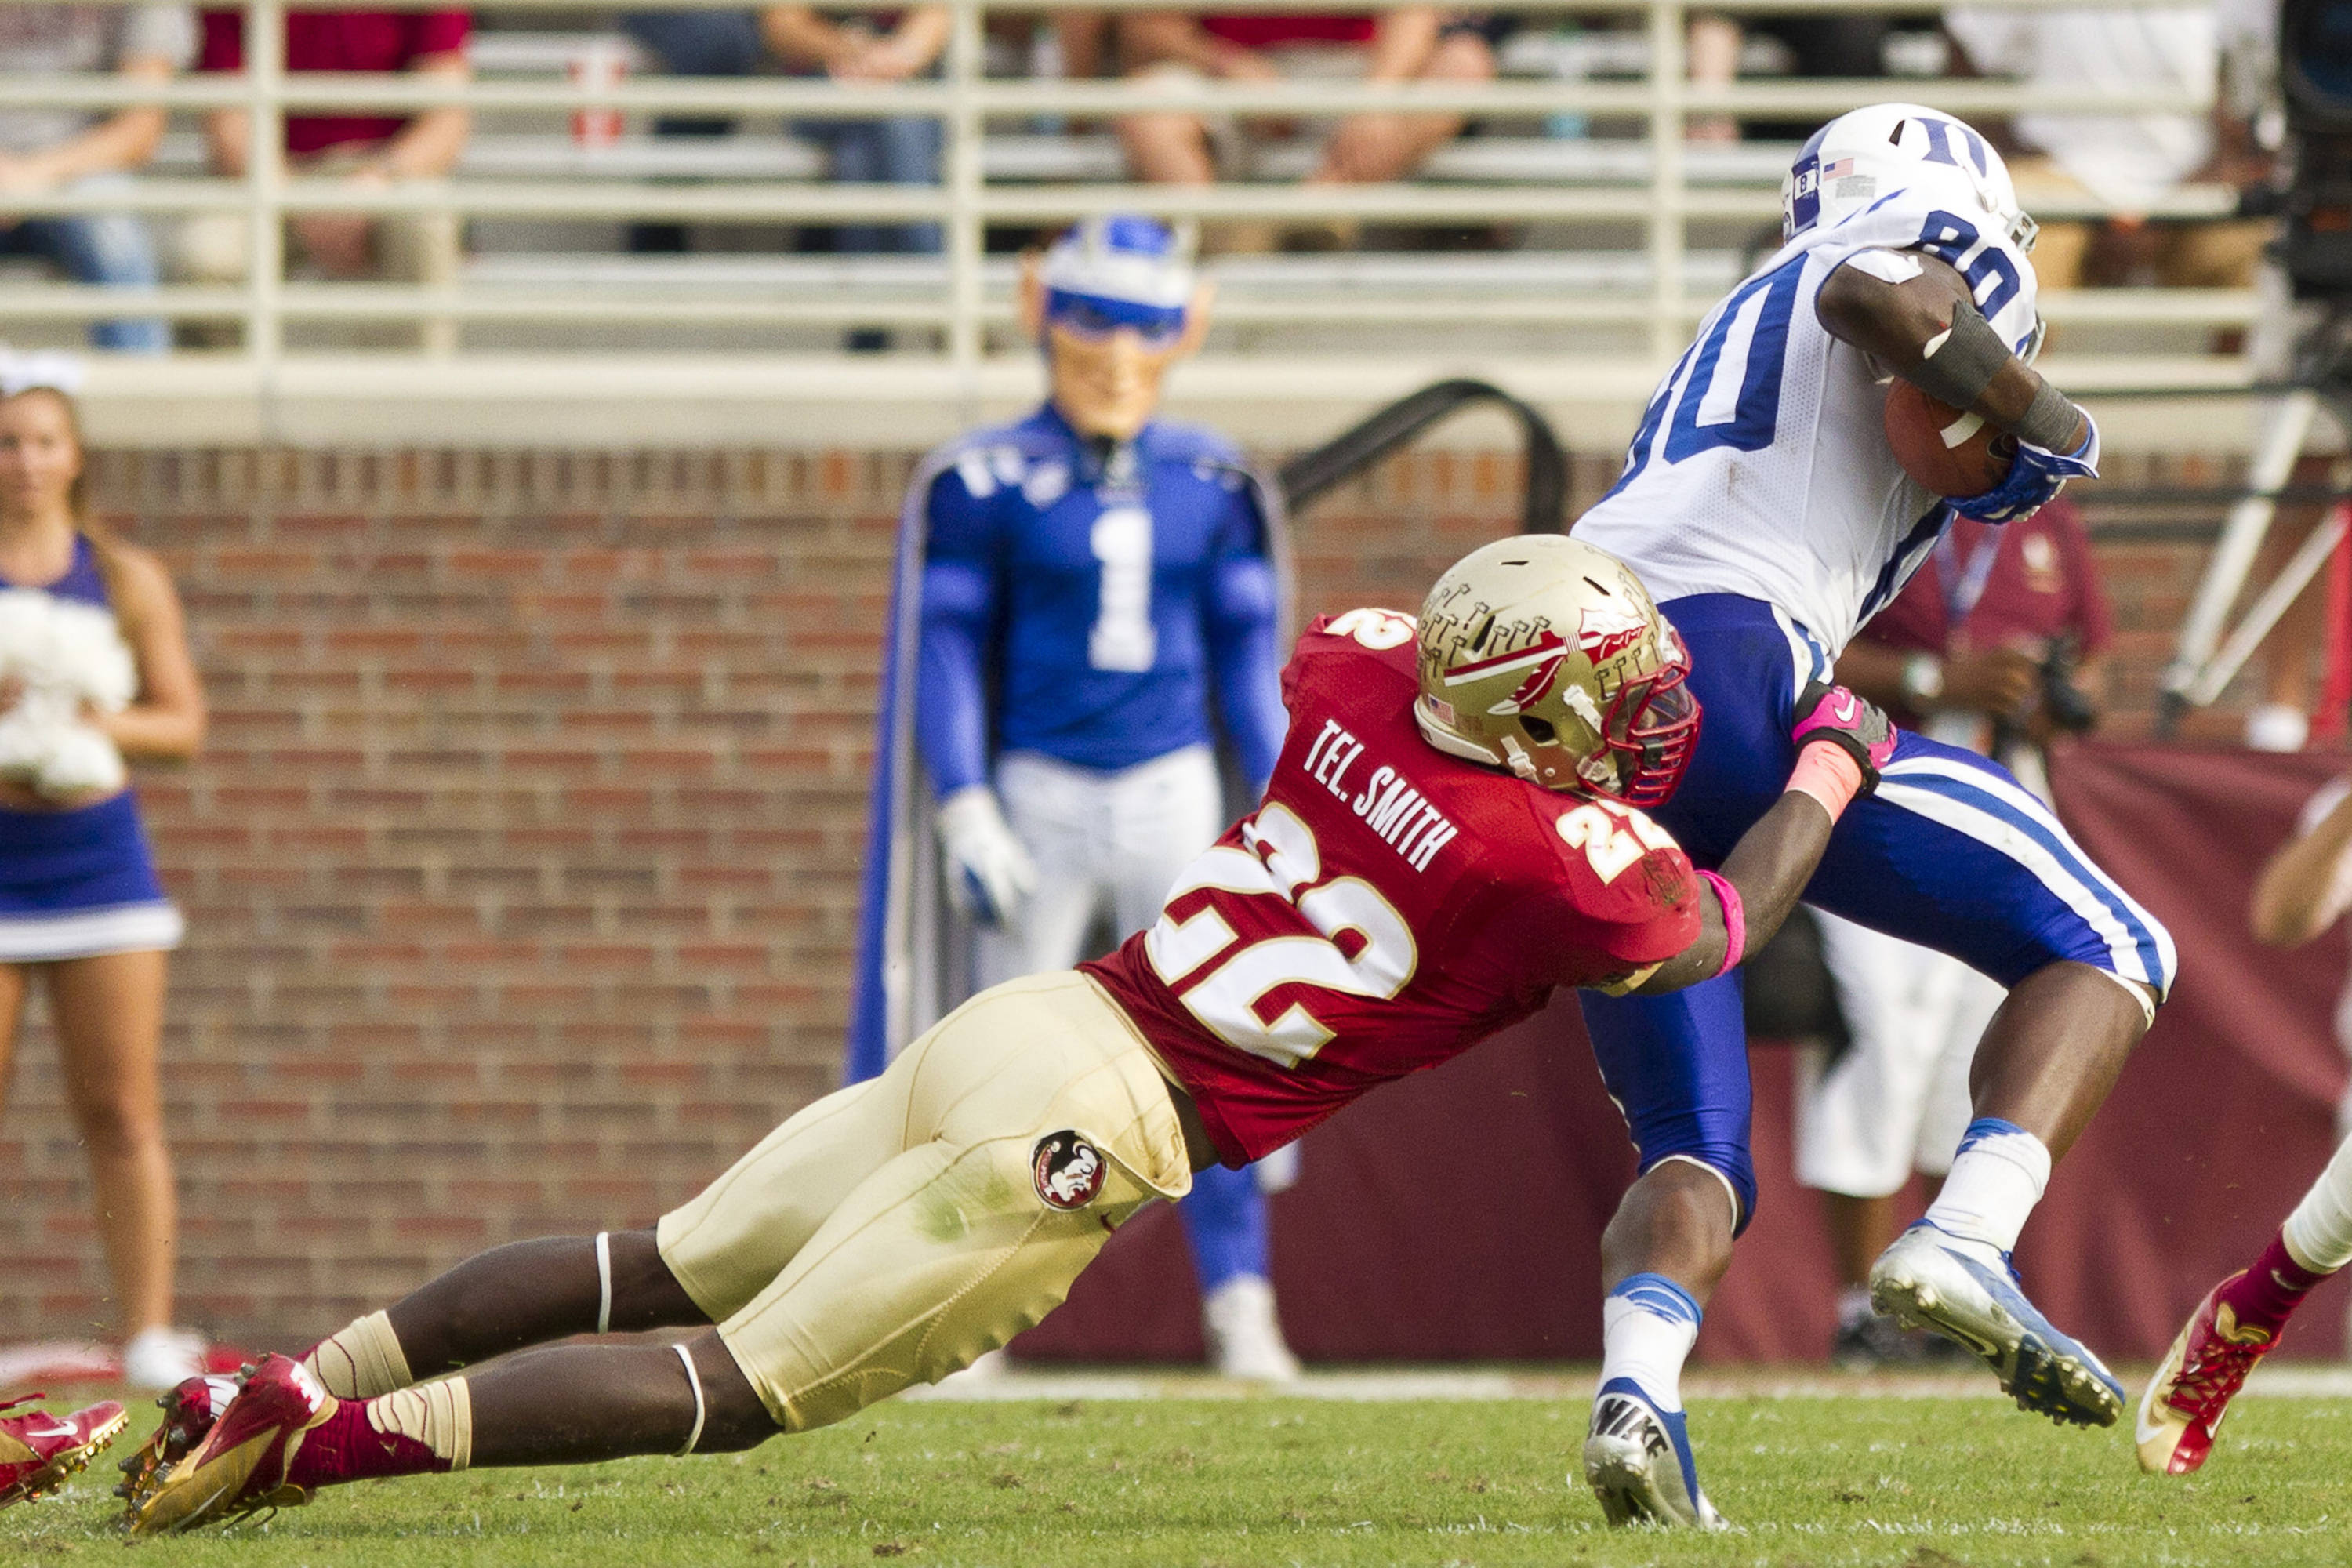 Telvin Smith (22) tackles a Duke ball carrier during FSU's 48-7 victory over Duke on October 27, 2012 in Tallahassee, Fla.